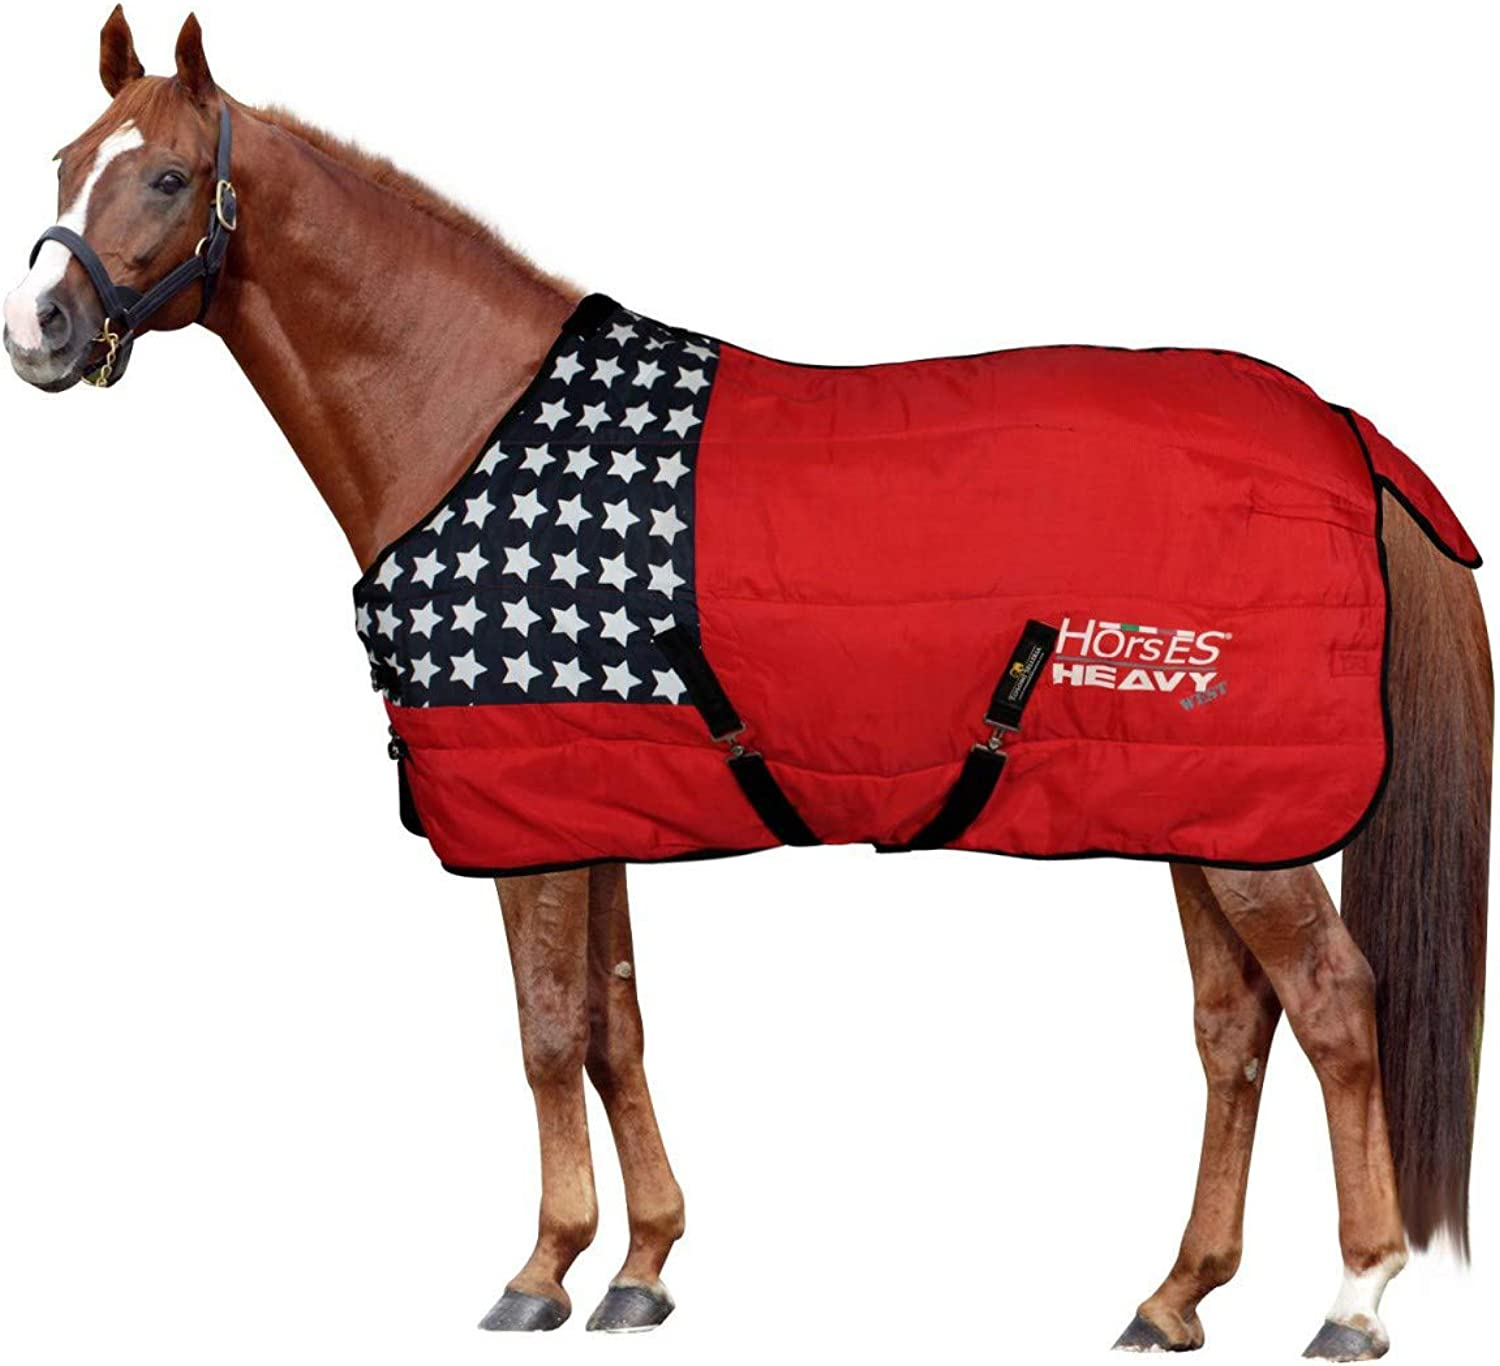 Horses Heavy West Stable Rug 400g